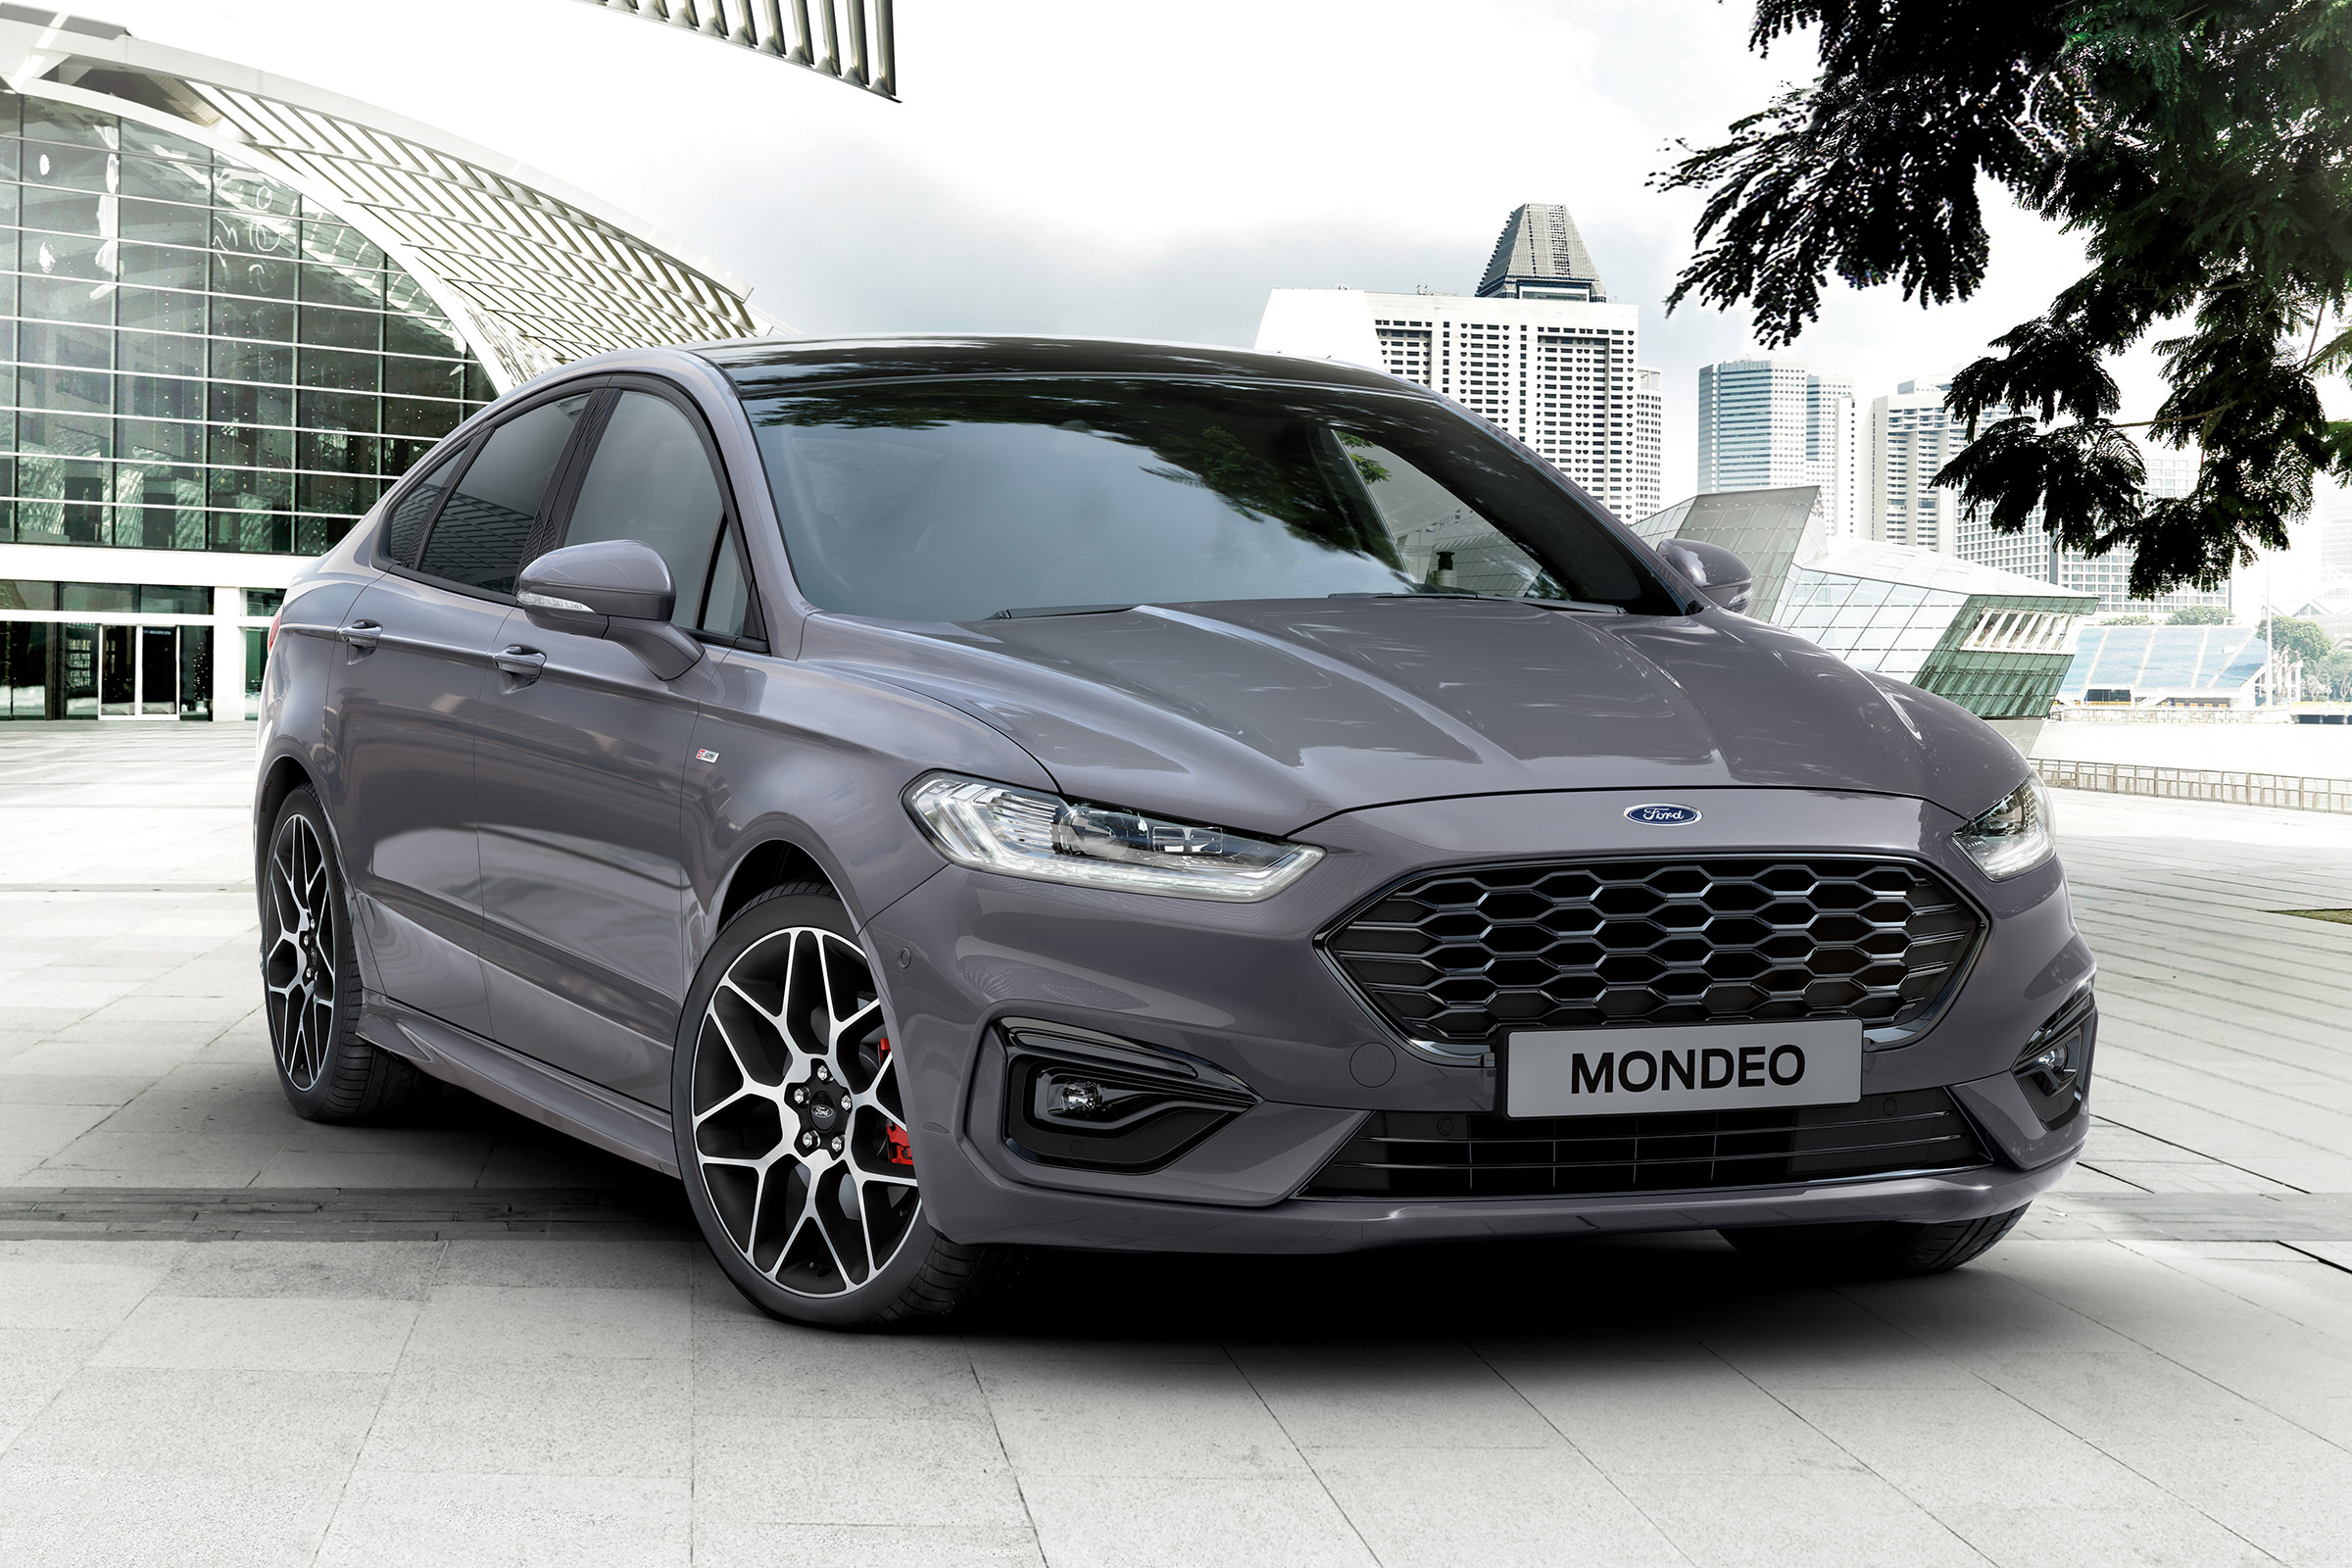 Ford Mondeo with its wonderful look